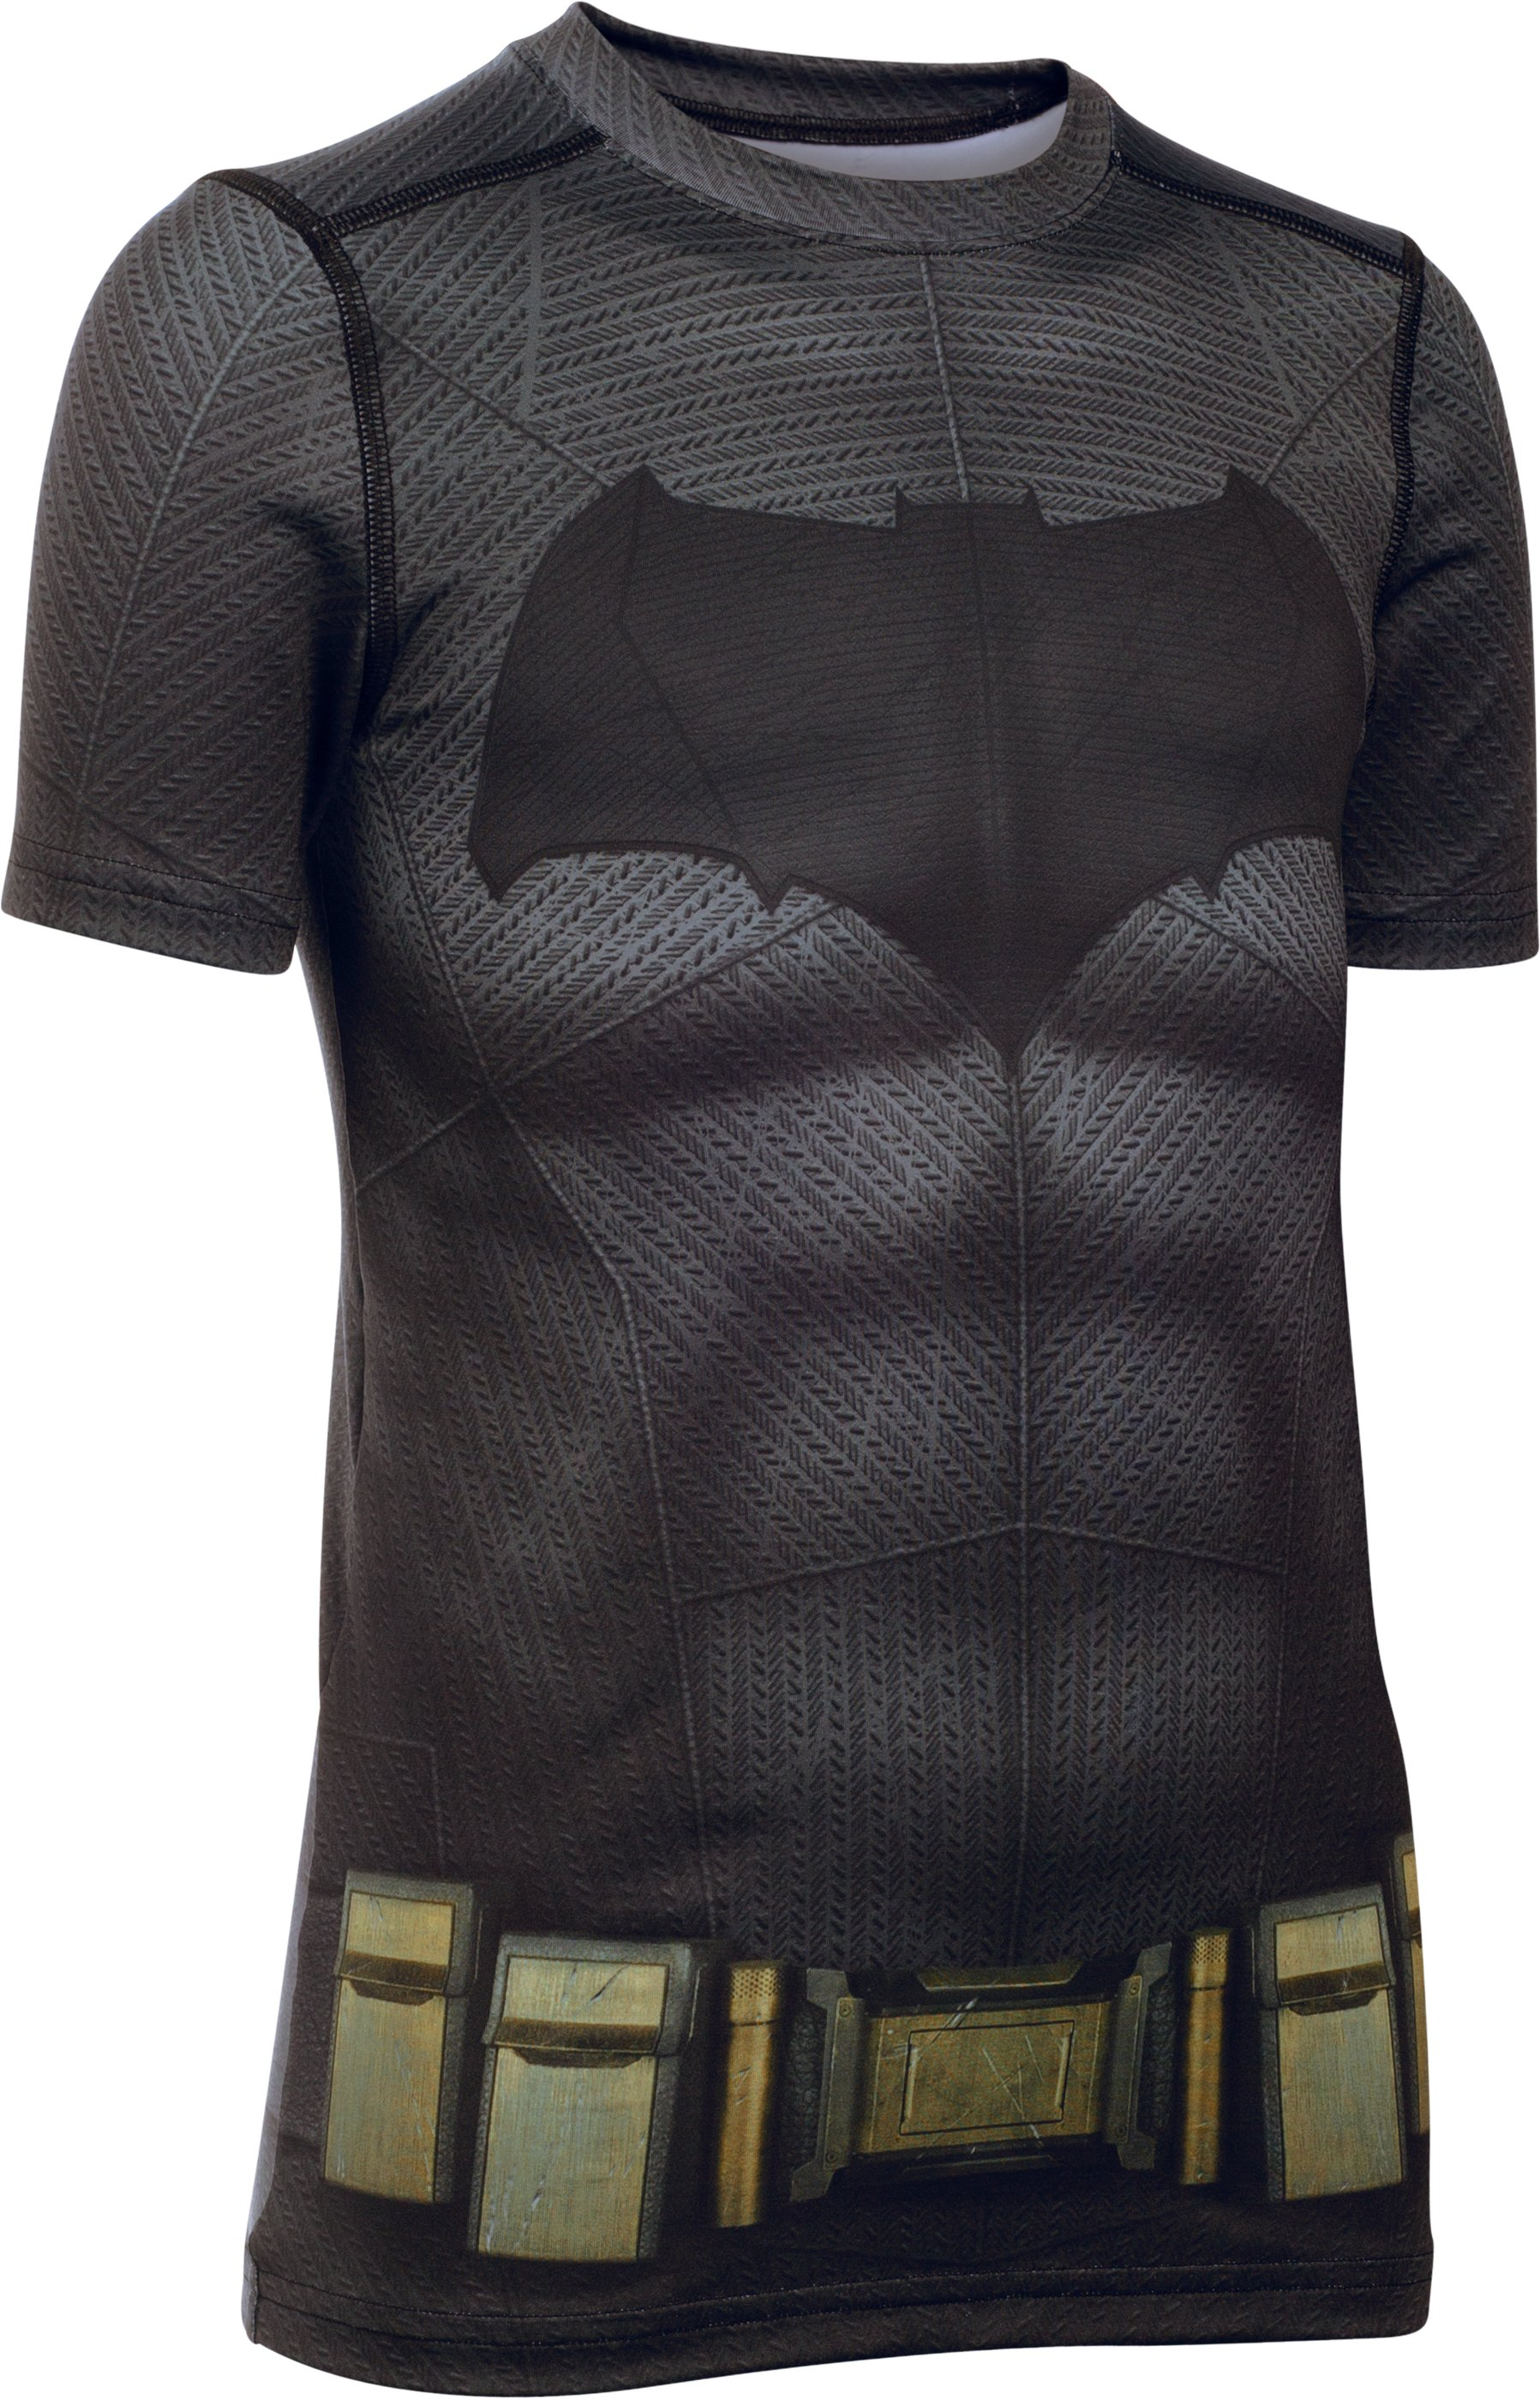 Boys' Under Armour® Batman Fitted Shirt, Graphite,